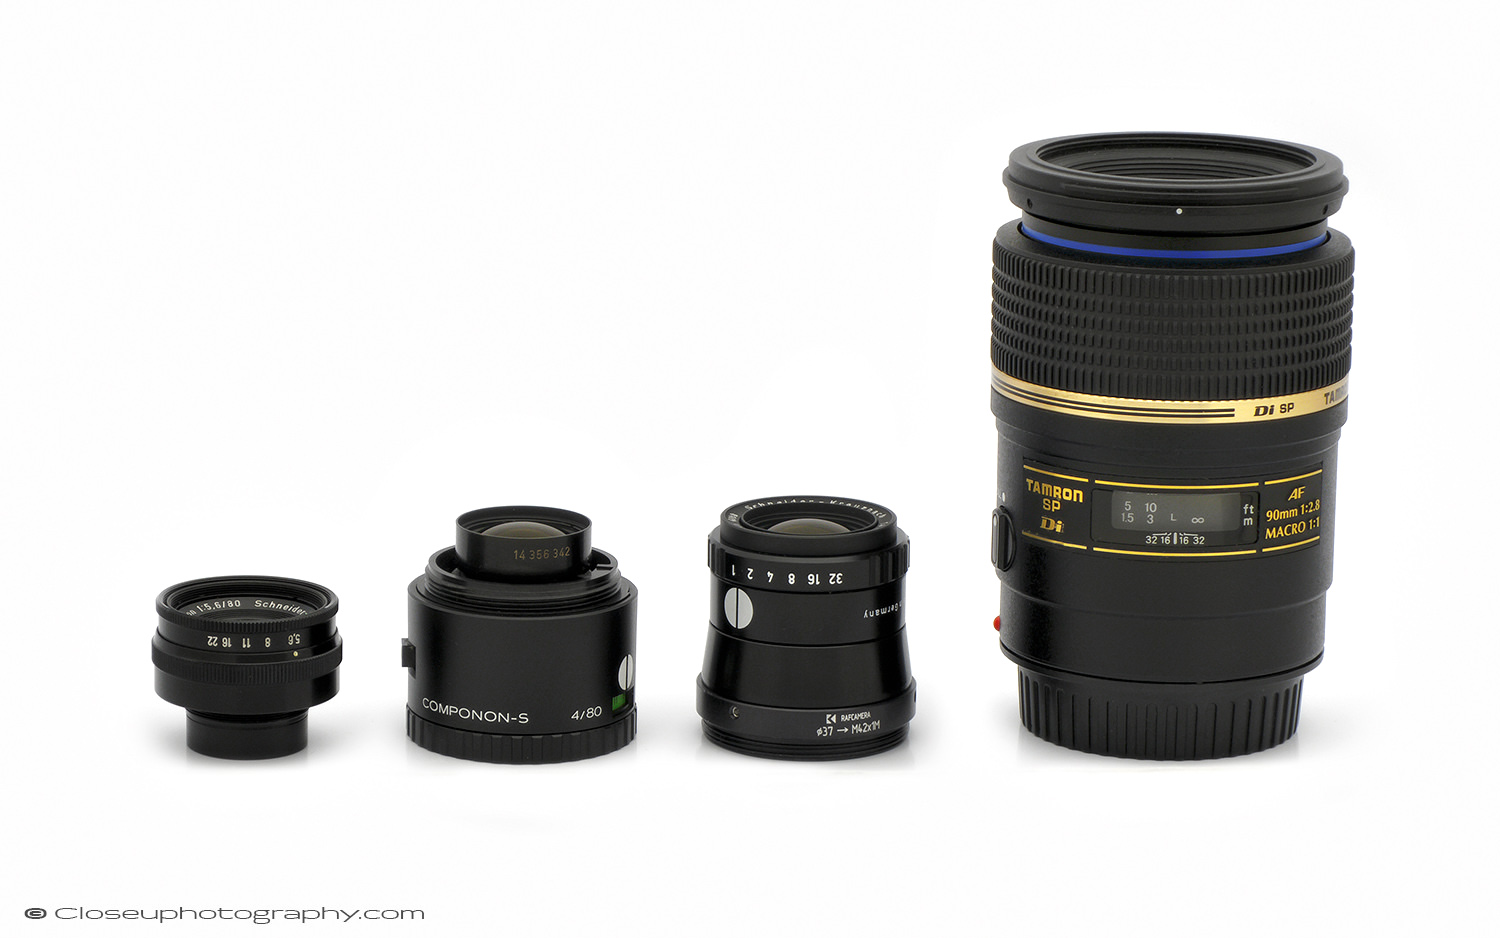 1x-80mm-Lens-Line-up-www-Closeuphotography-com.jpg